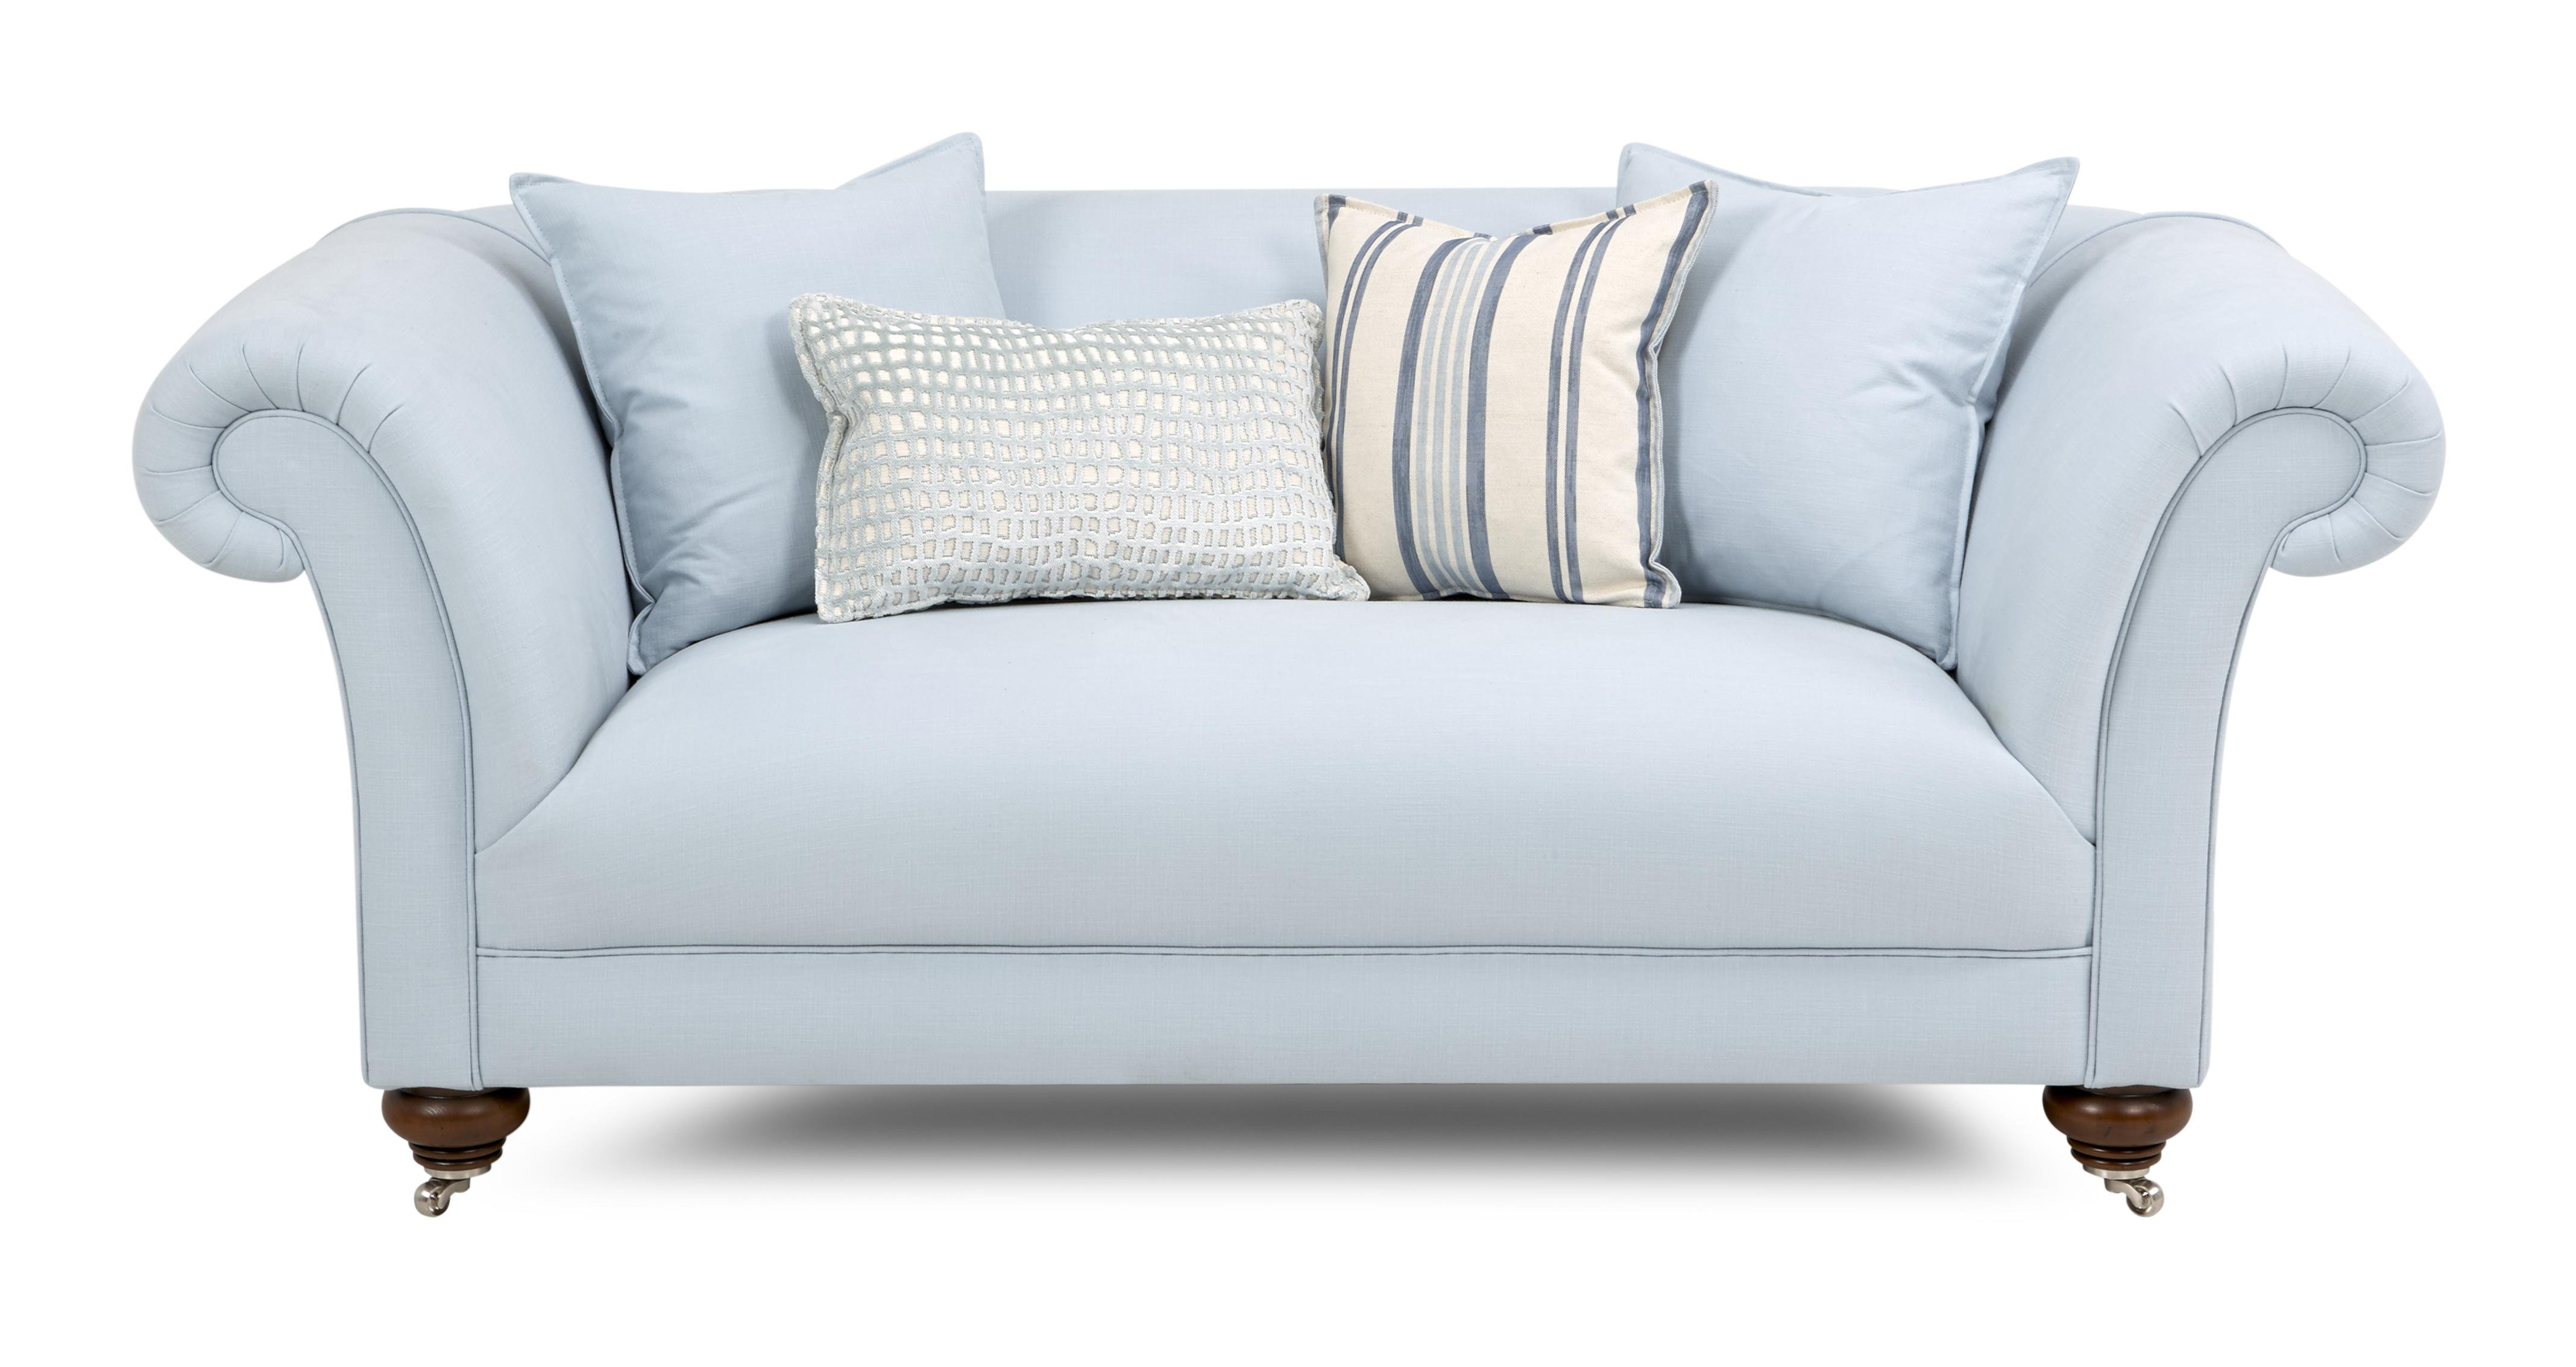 Lavenham Medium Sofa DFS